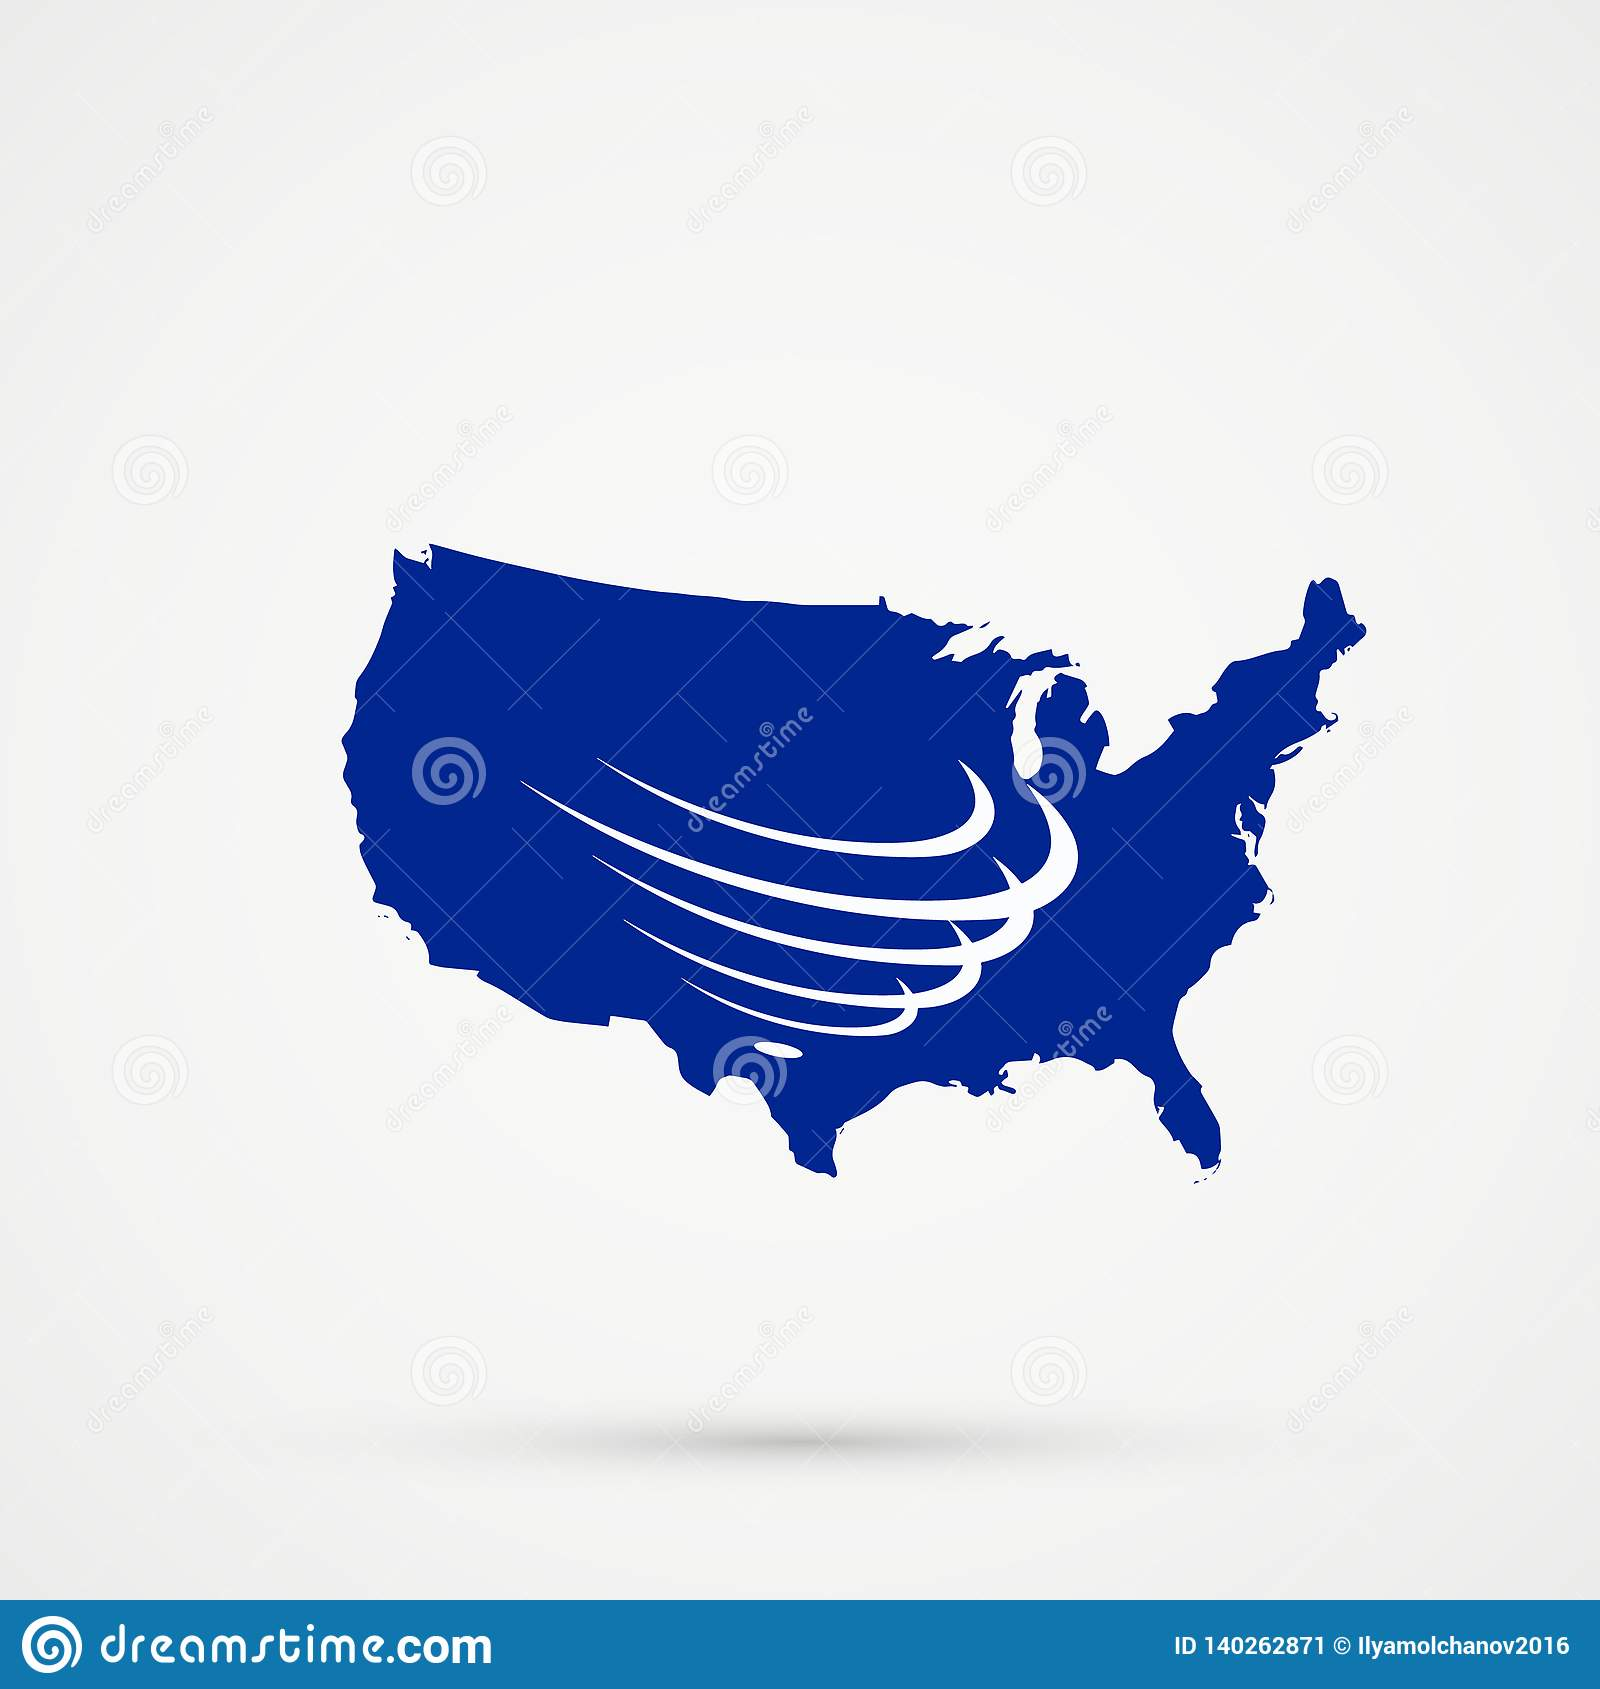 United States Of America USA Map In Union Of South American ...